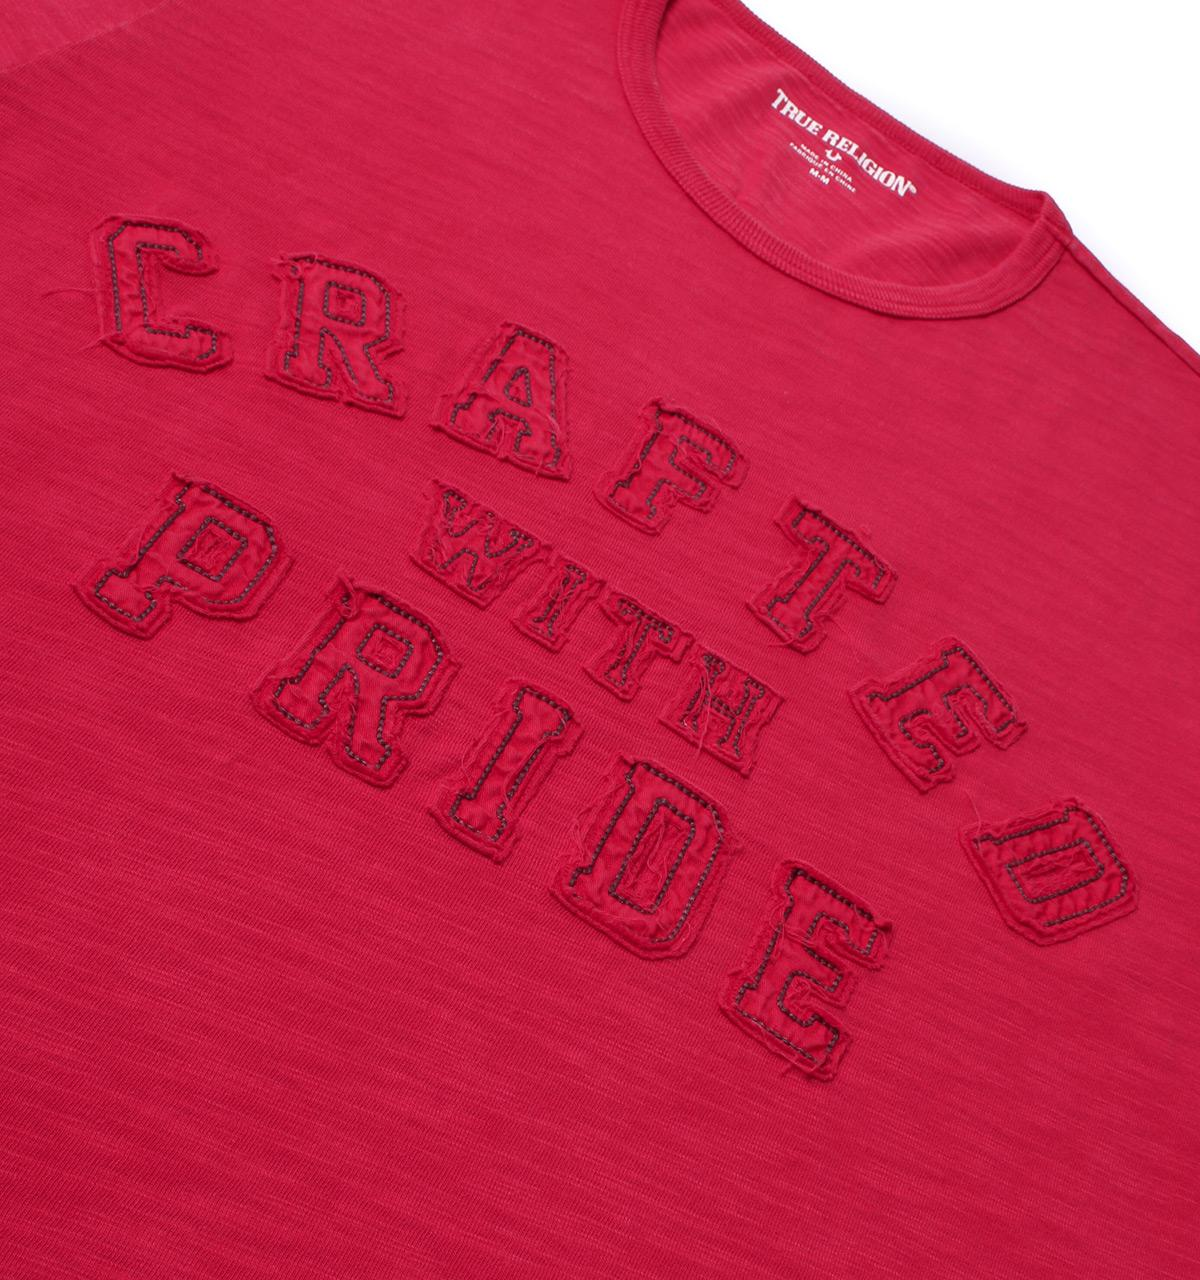 fa827667 Lyst - True Religion Crafted With Pride Ruby Red Applique T-shirt in ...